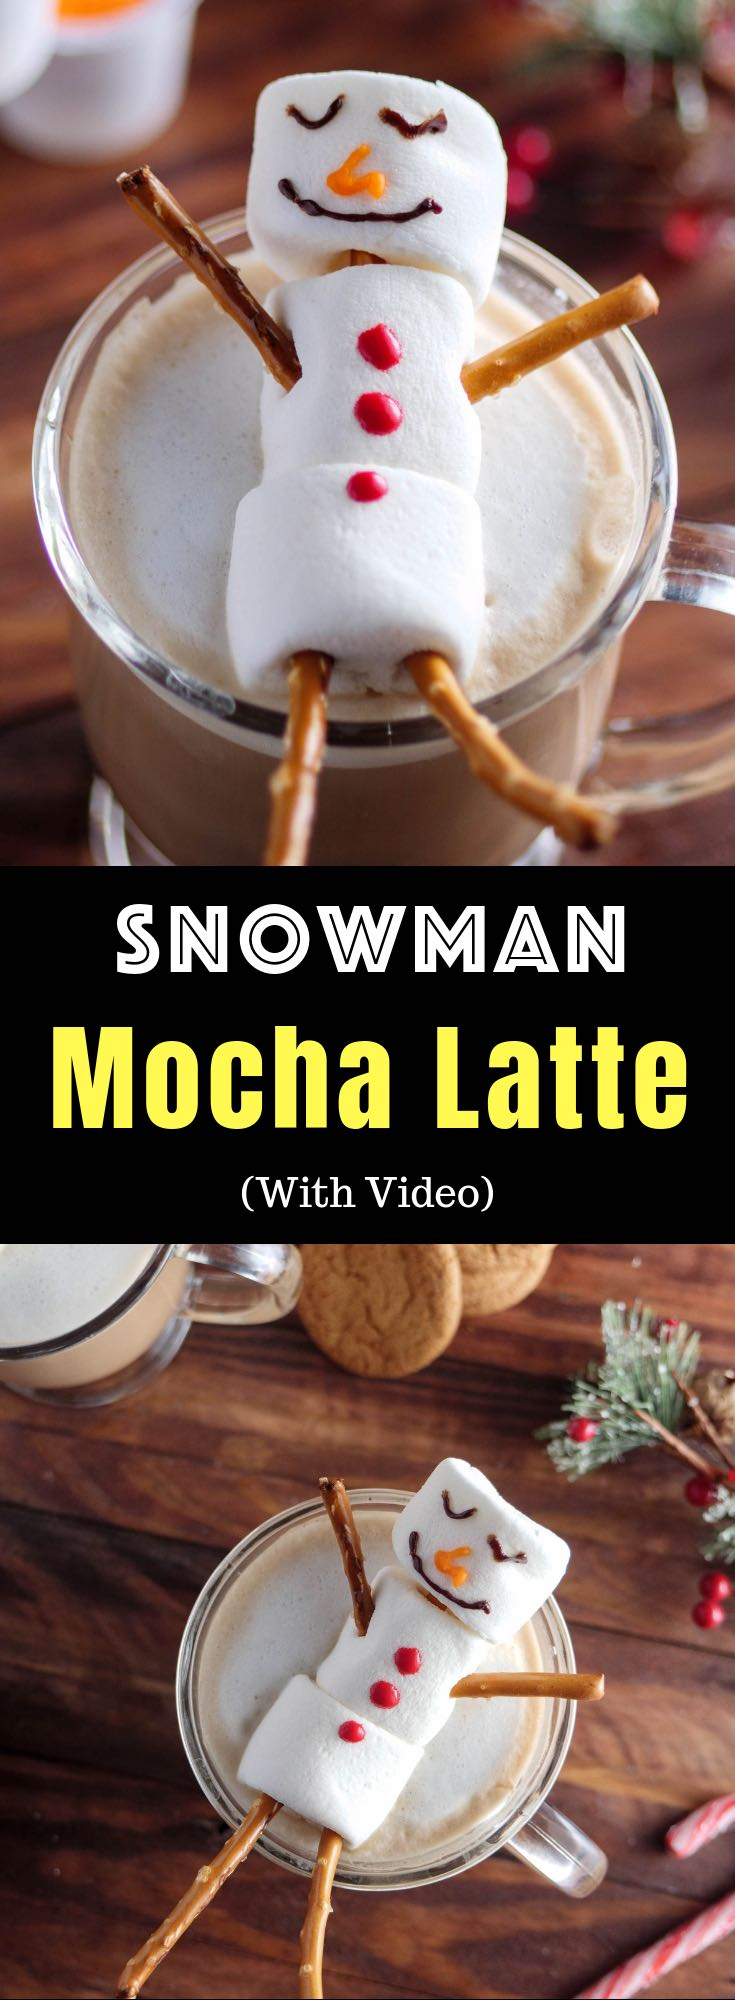 A Snowman Mocha Latte is an easy hot drink to serve your guests during the holiday season, and you can make it in minutes using Dunkin' Donuts K-cup pods from @Walmart and a few simple ingredients like cocoa, milk, marshmallows and decorating gel. Perfect for parties, kids activities. #DunkinYouBrewYou #ad